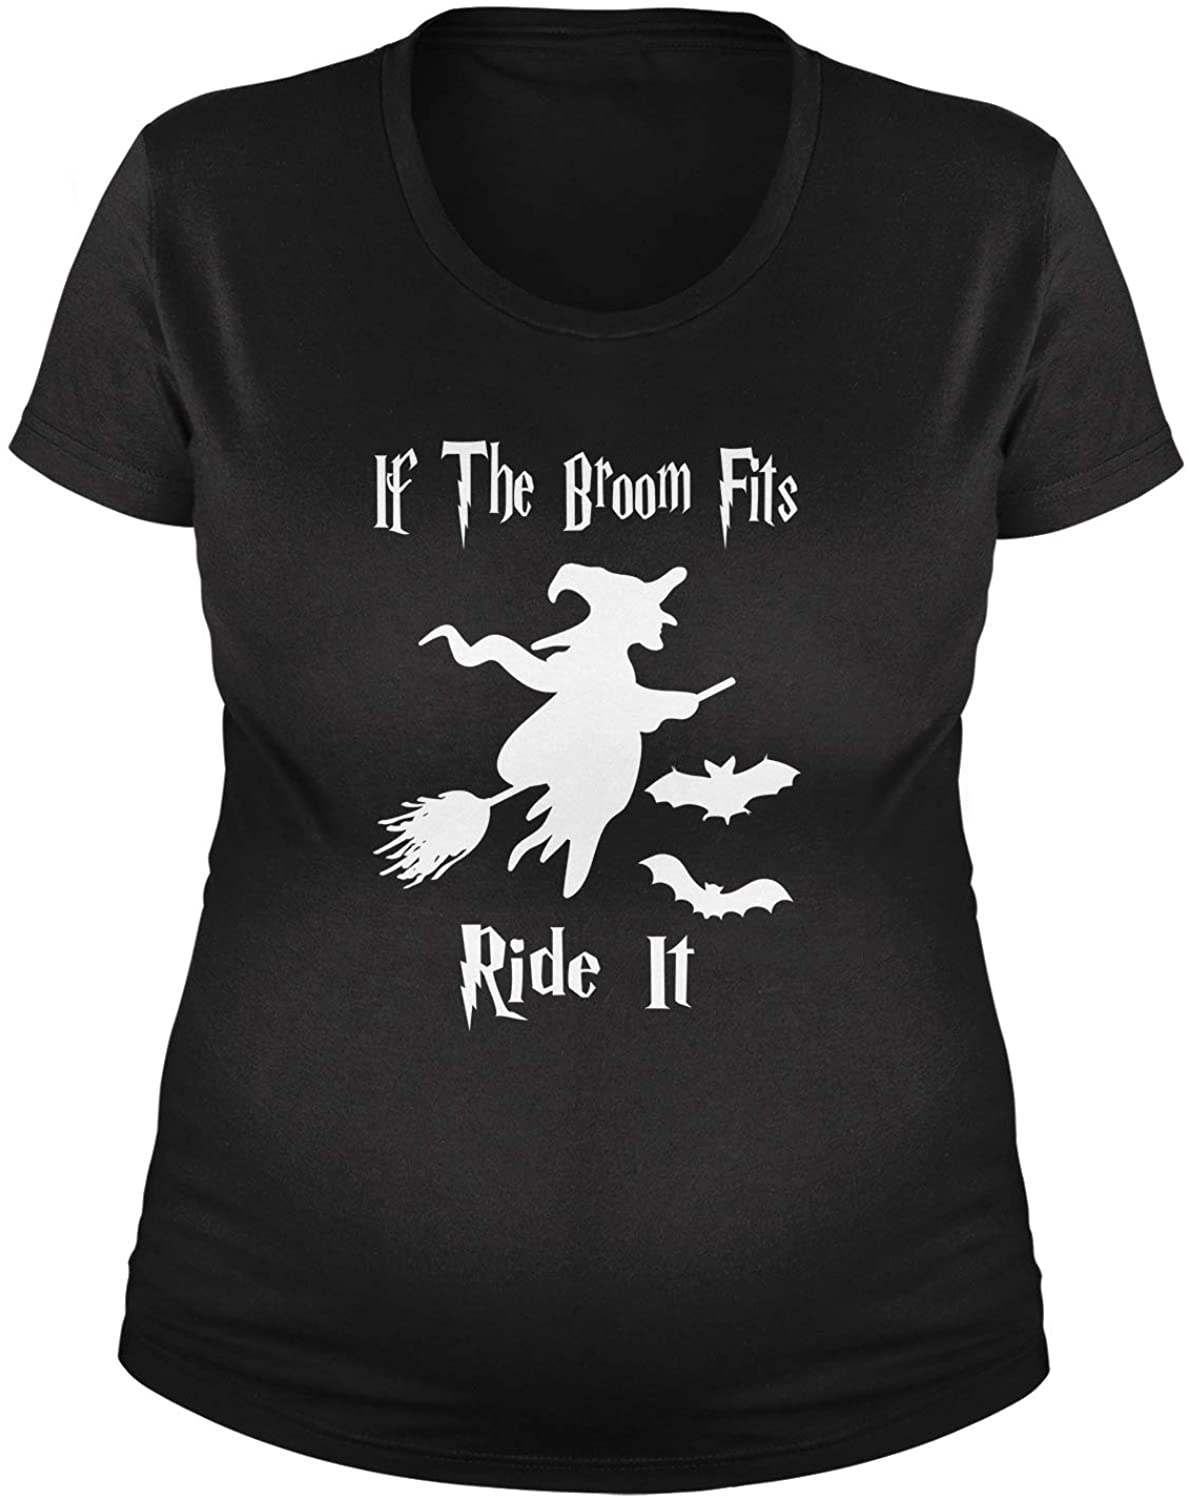 Expression Tees If The Broom Fits Ride It Witch Maternity Pregnancy Scoop Neck T-Shirt